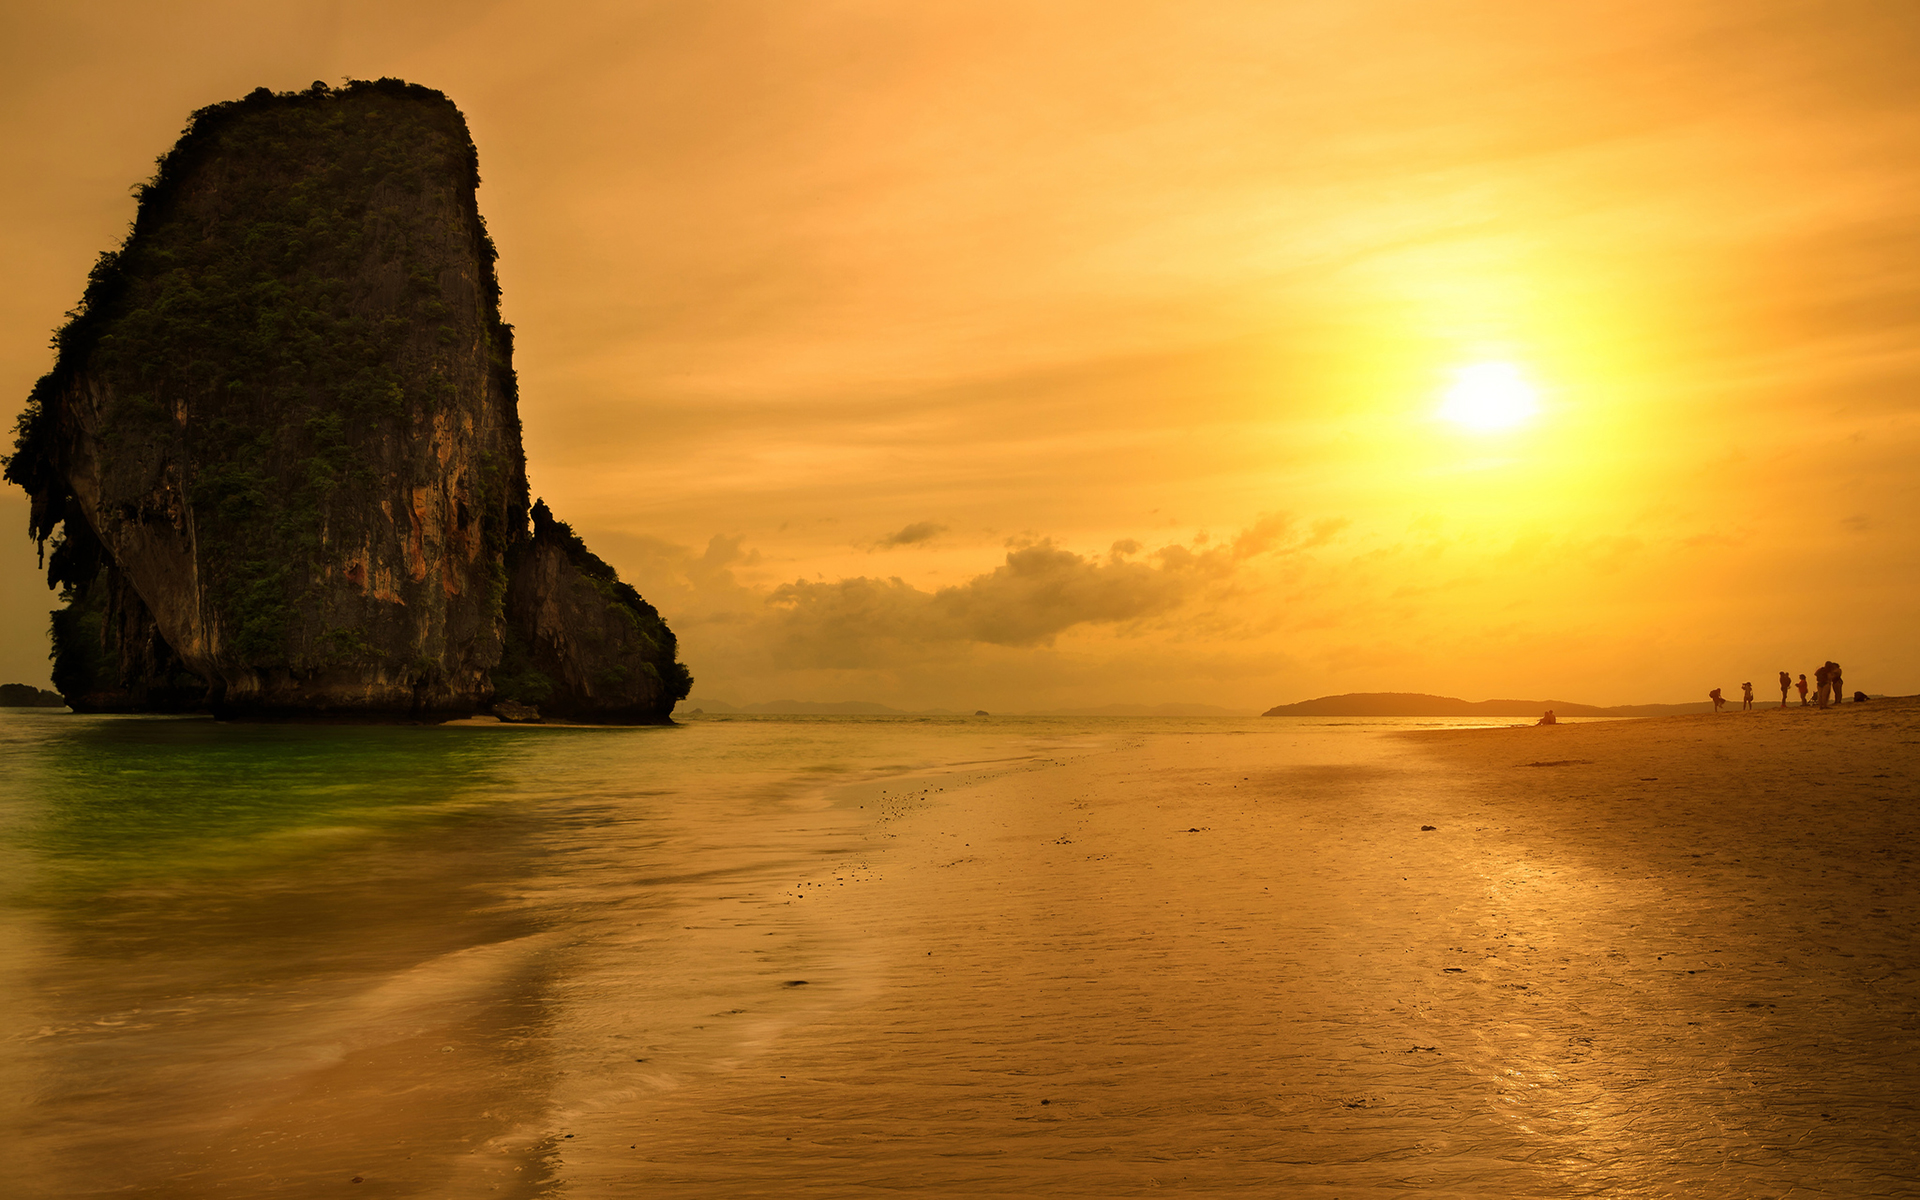 sunset pictures thailand